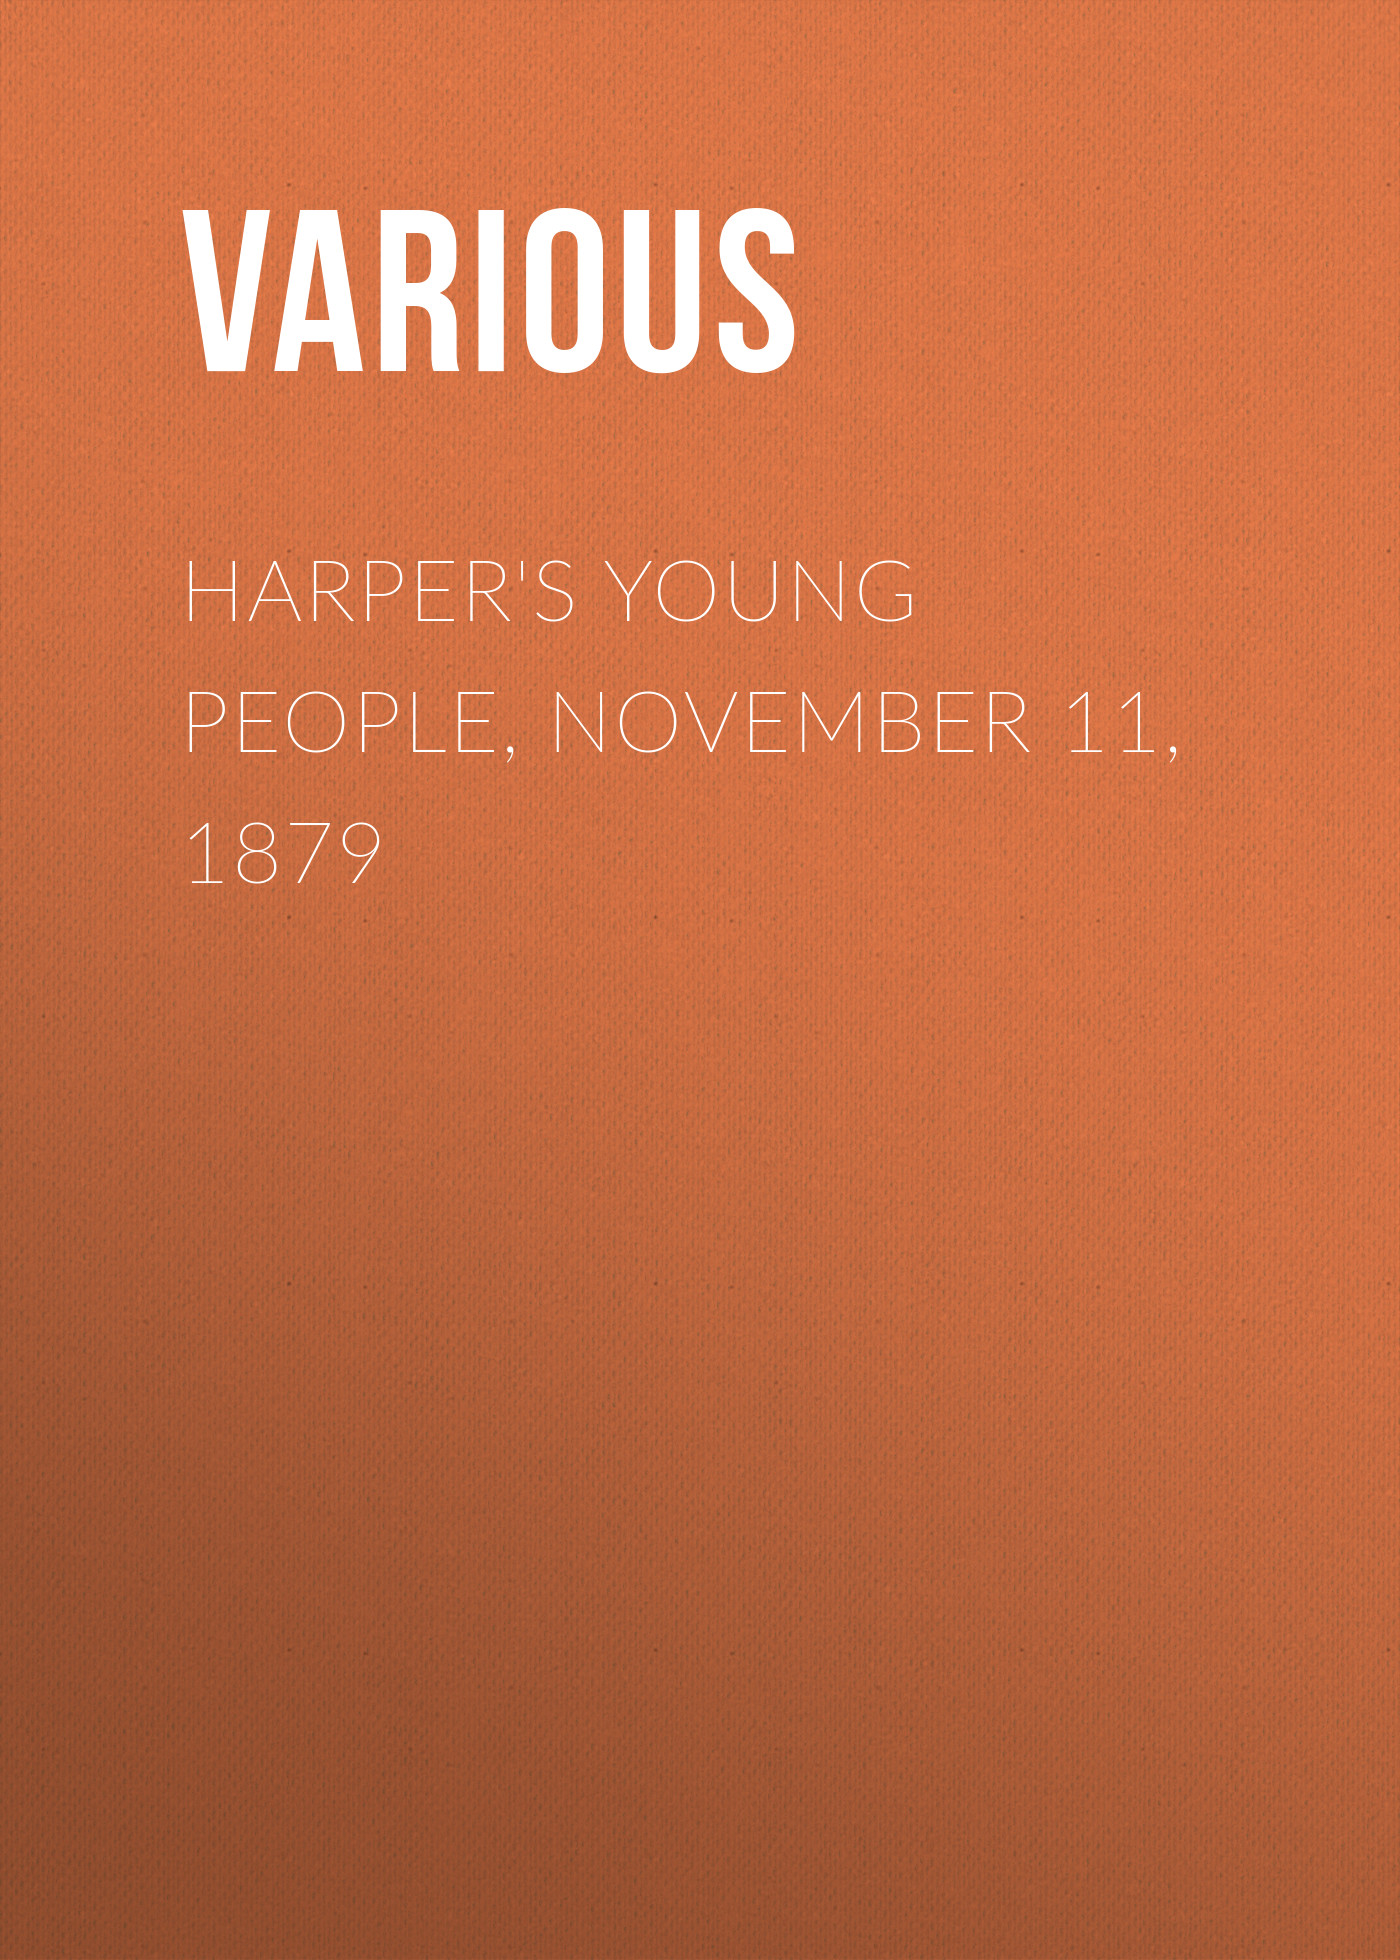 Harper\'s Young People, November 11, 1879 ( Various  )